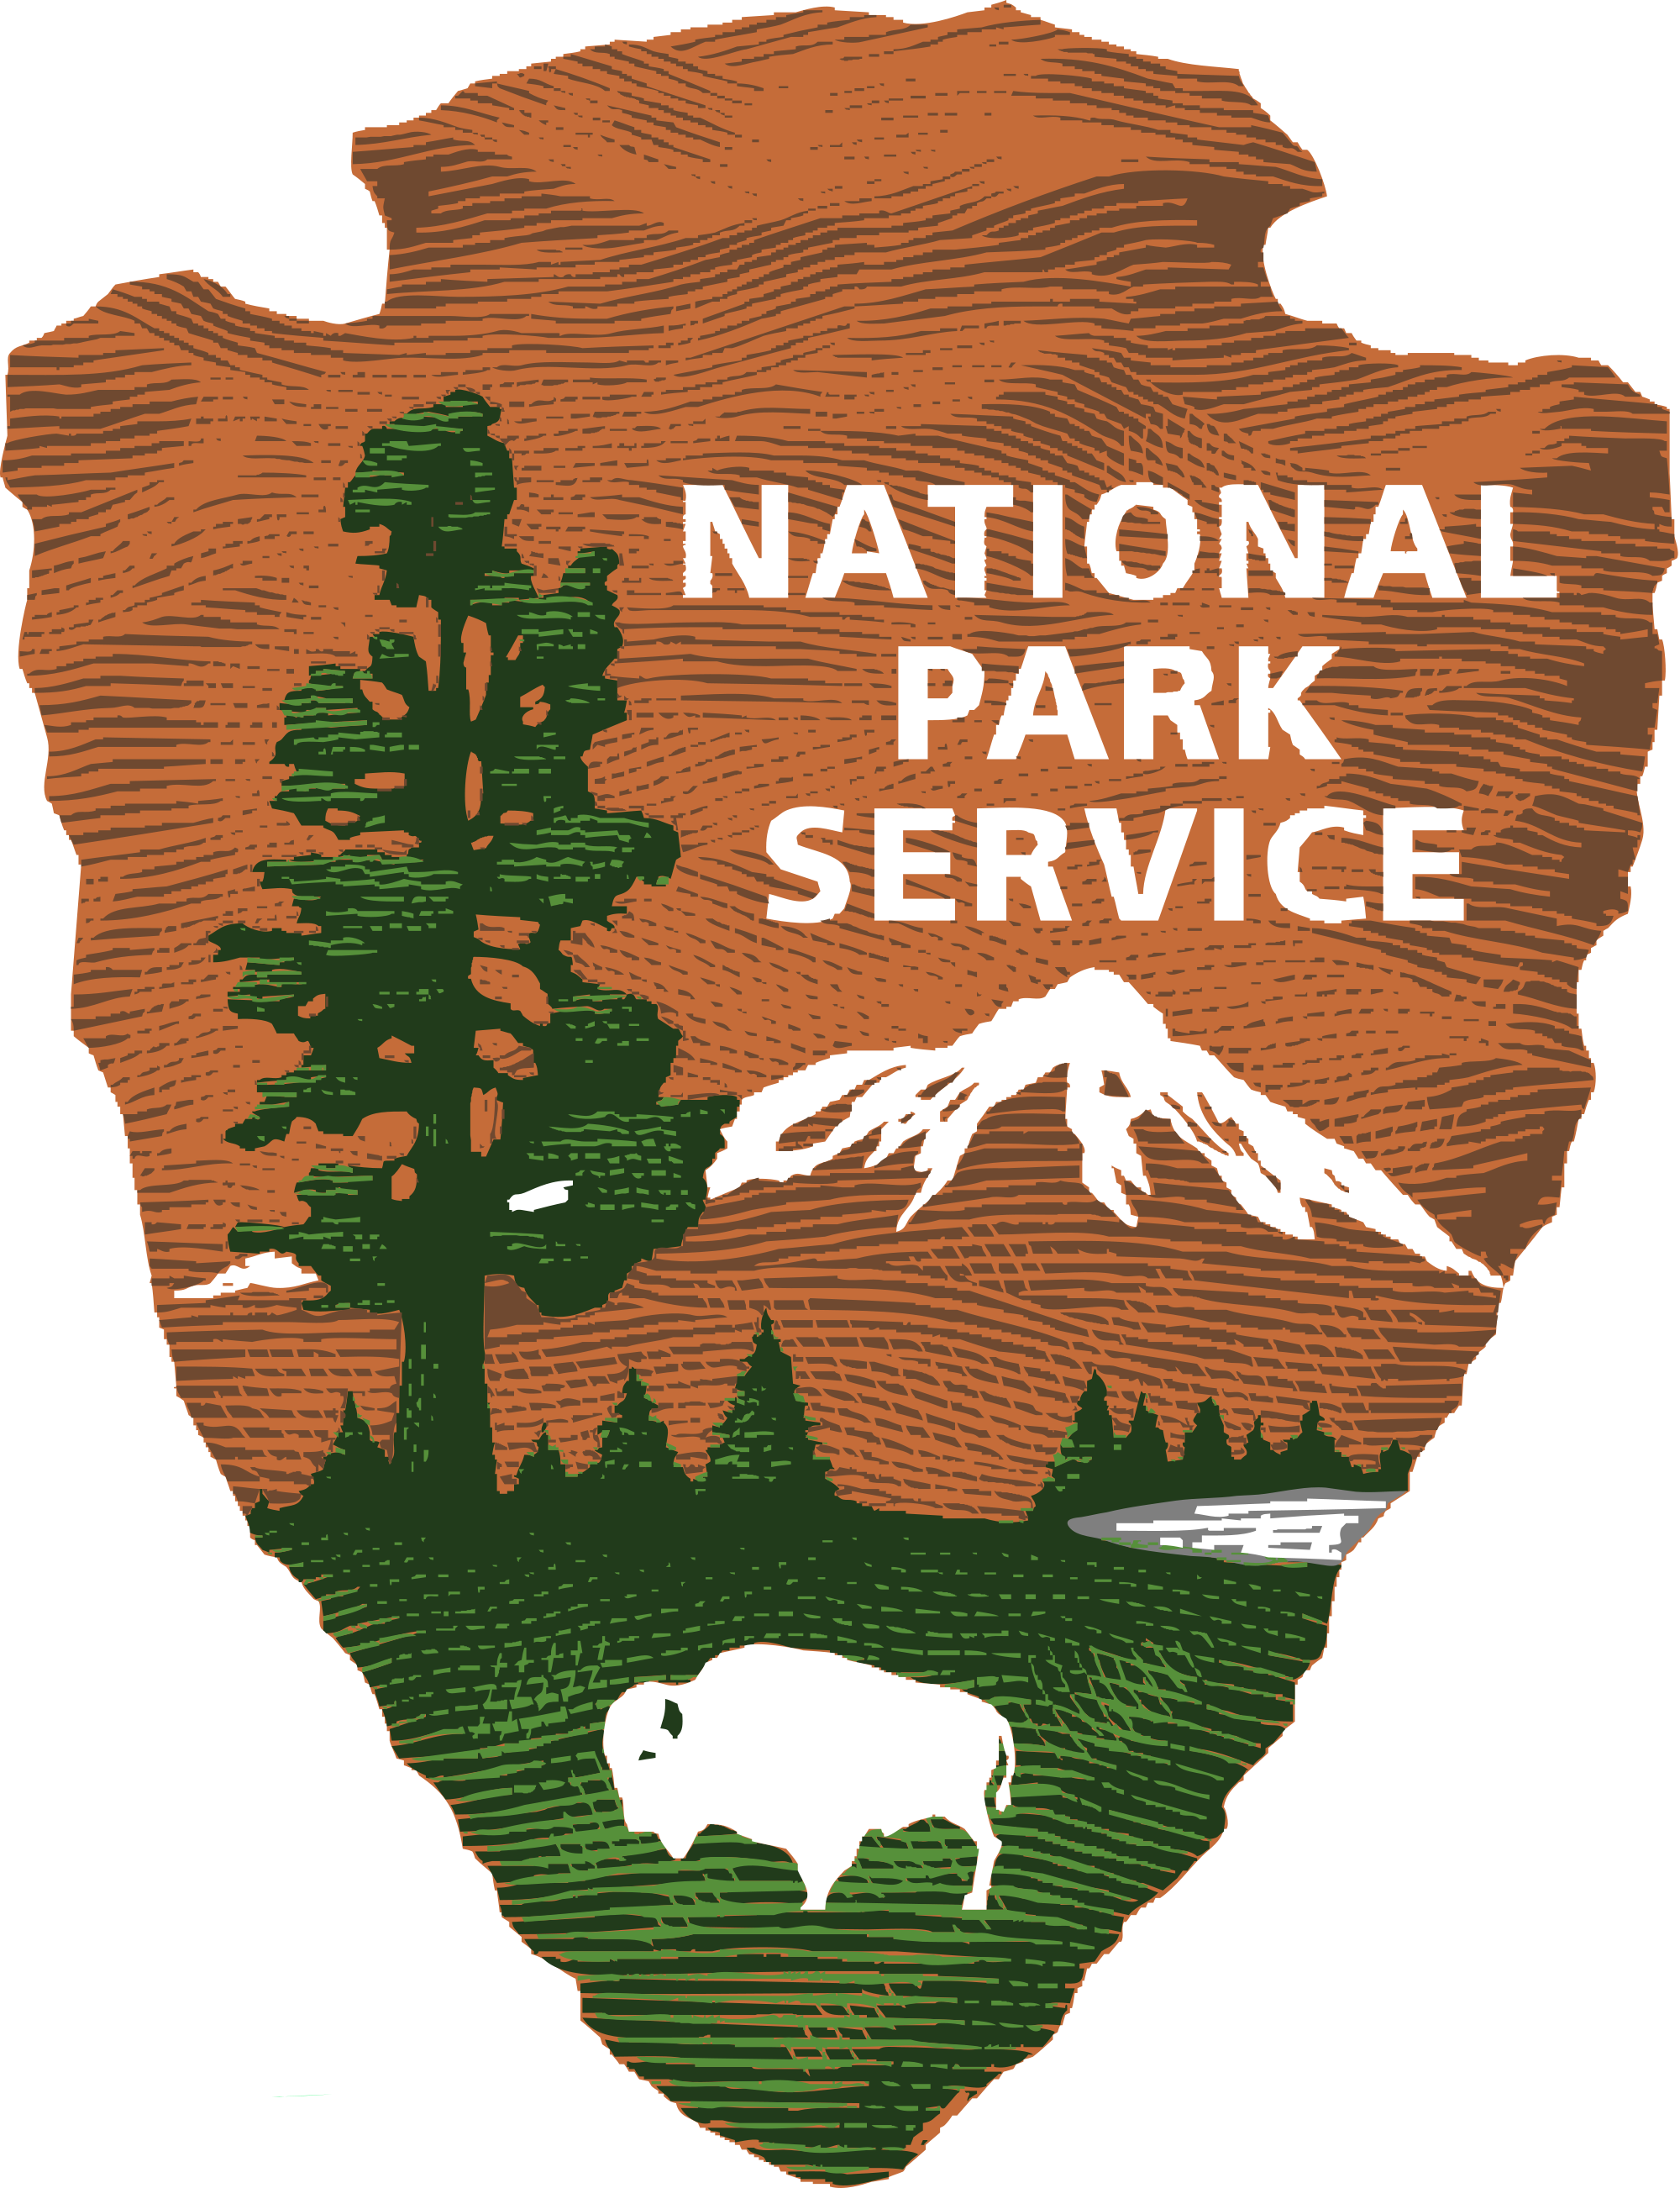 Clipart definition law. National park service wikipedia